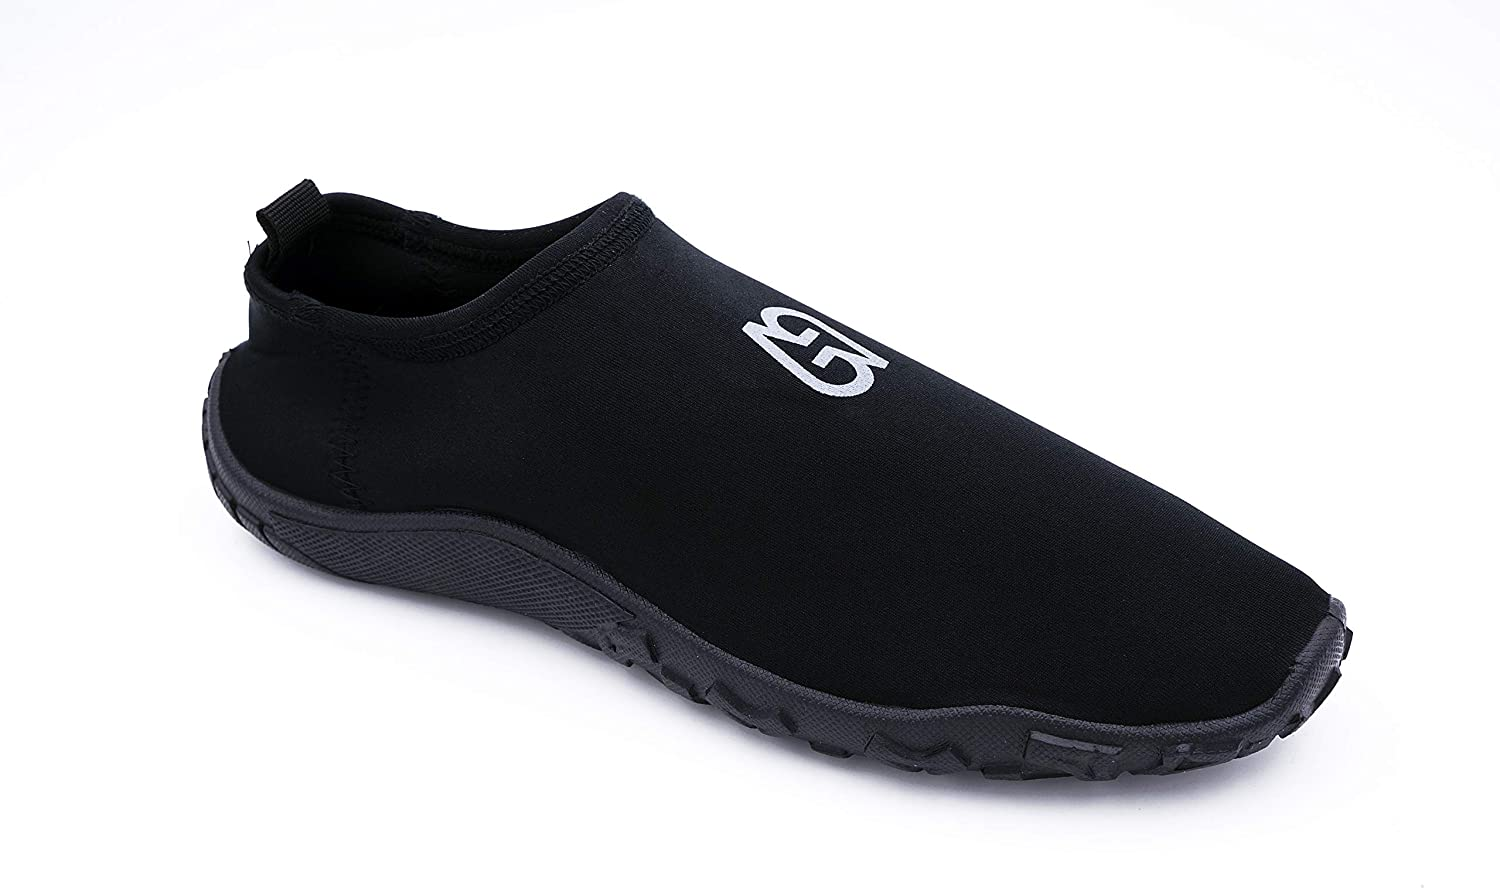 Acquagear Water Sports Shoes Quick-Dry Barefoot Swim Beach Yoga Direct Fresno Mall sale of manufacturer